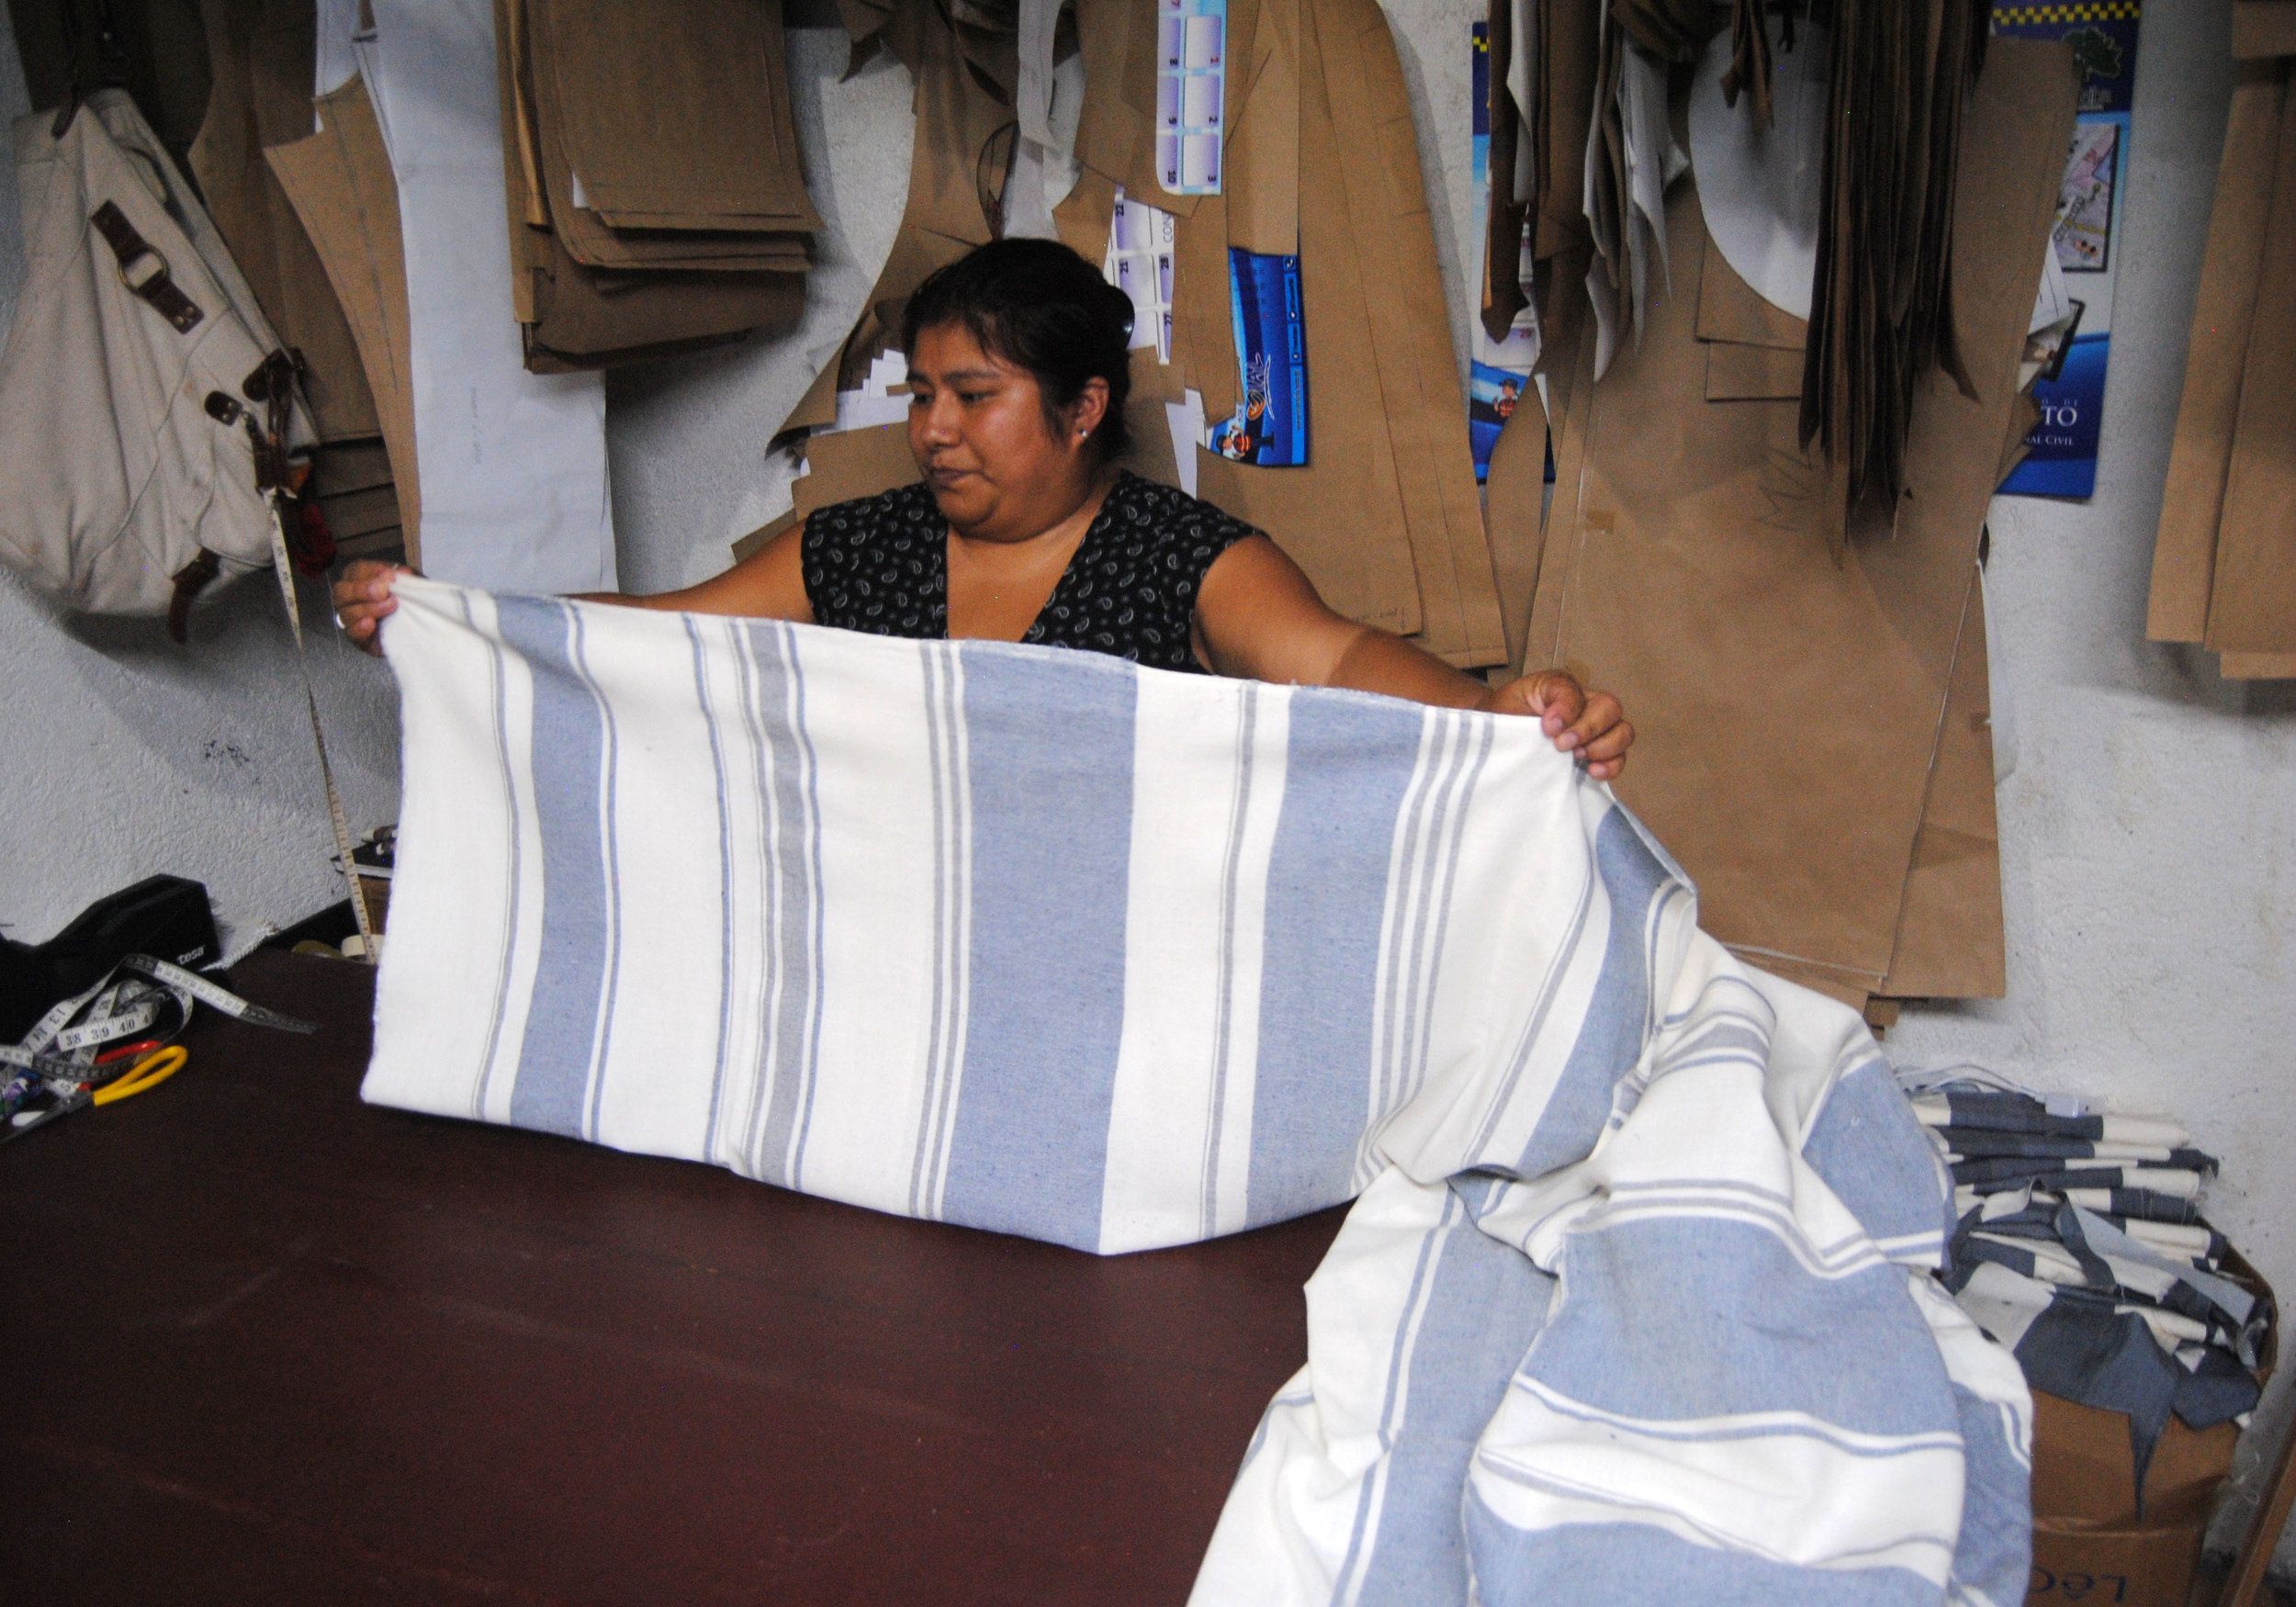 Irma Sophia in her sewing studio in her house. Cuidad Vieja, Guatemala